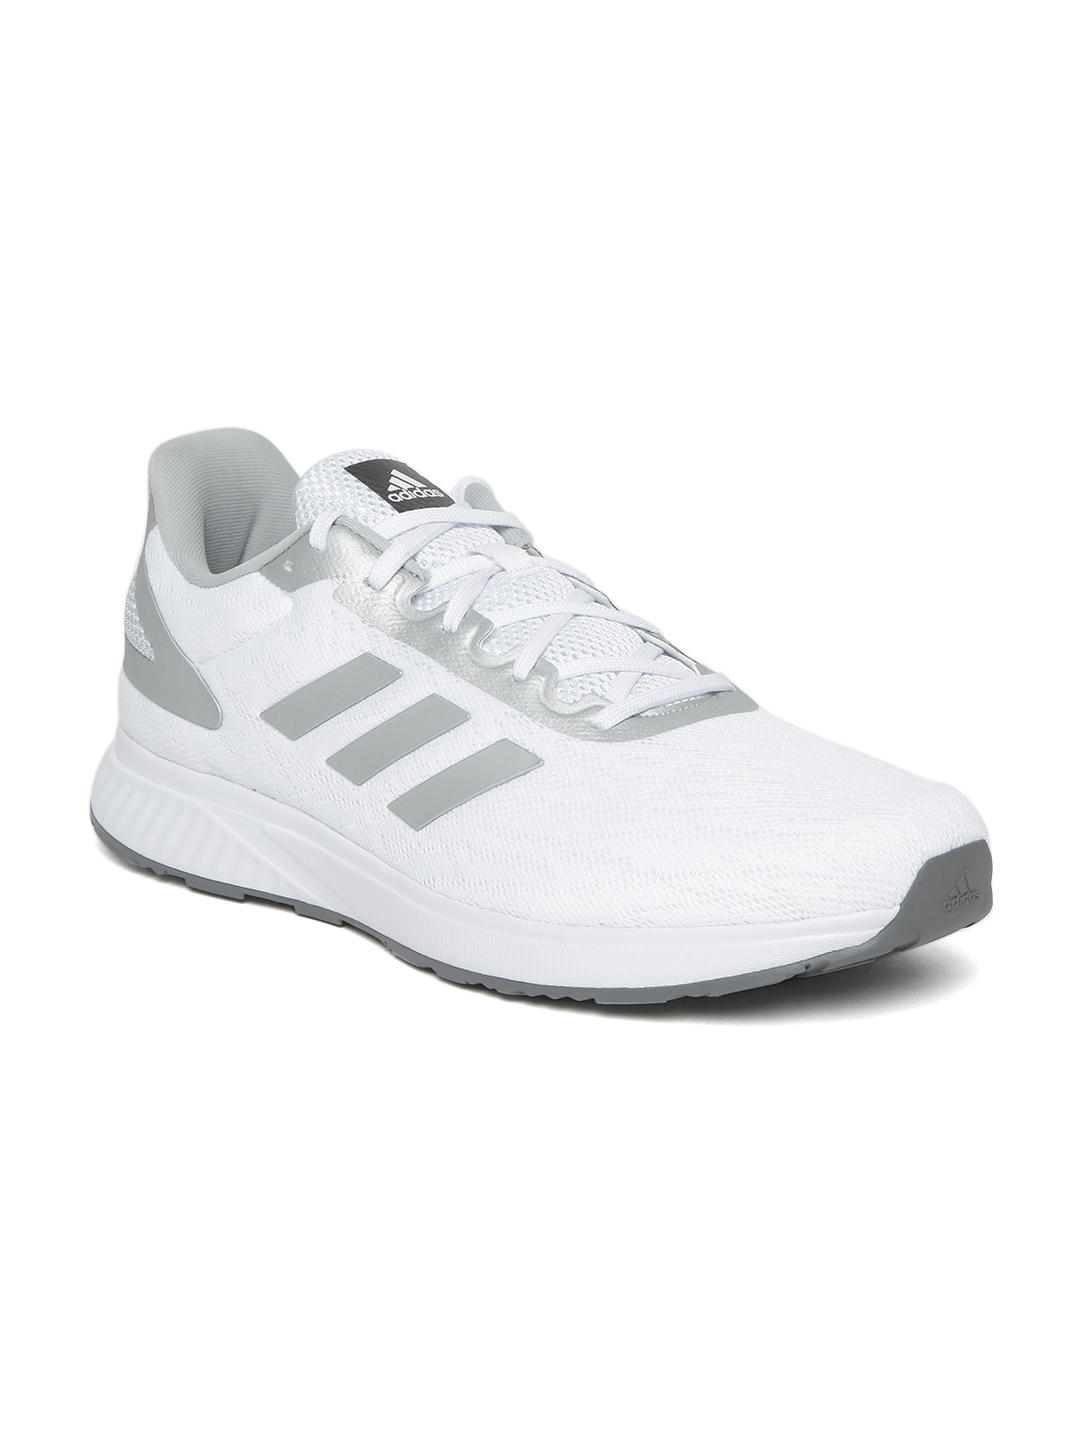 9e979603 new zealand adidas white sports shoes for men 2d6a4 612b7